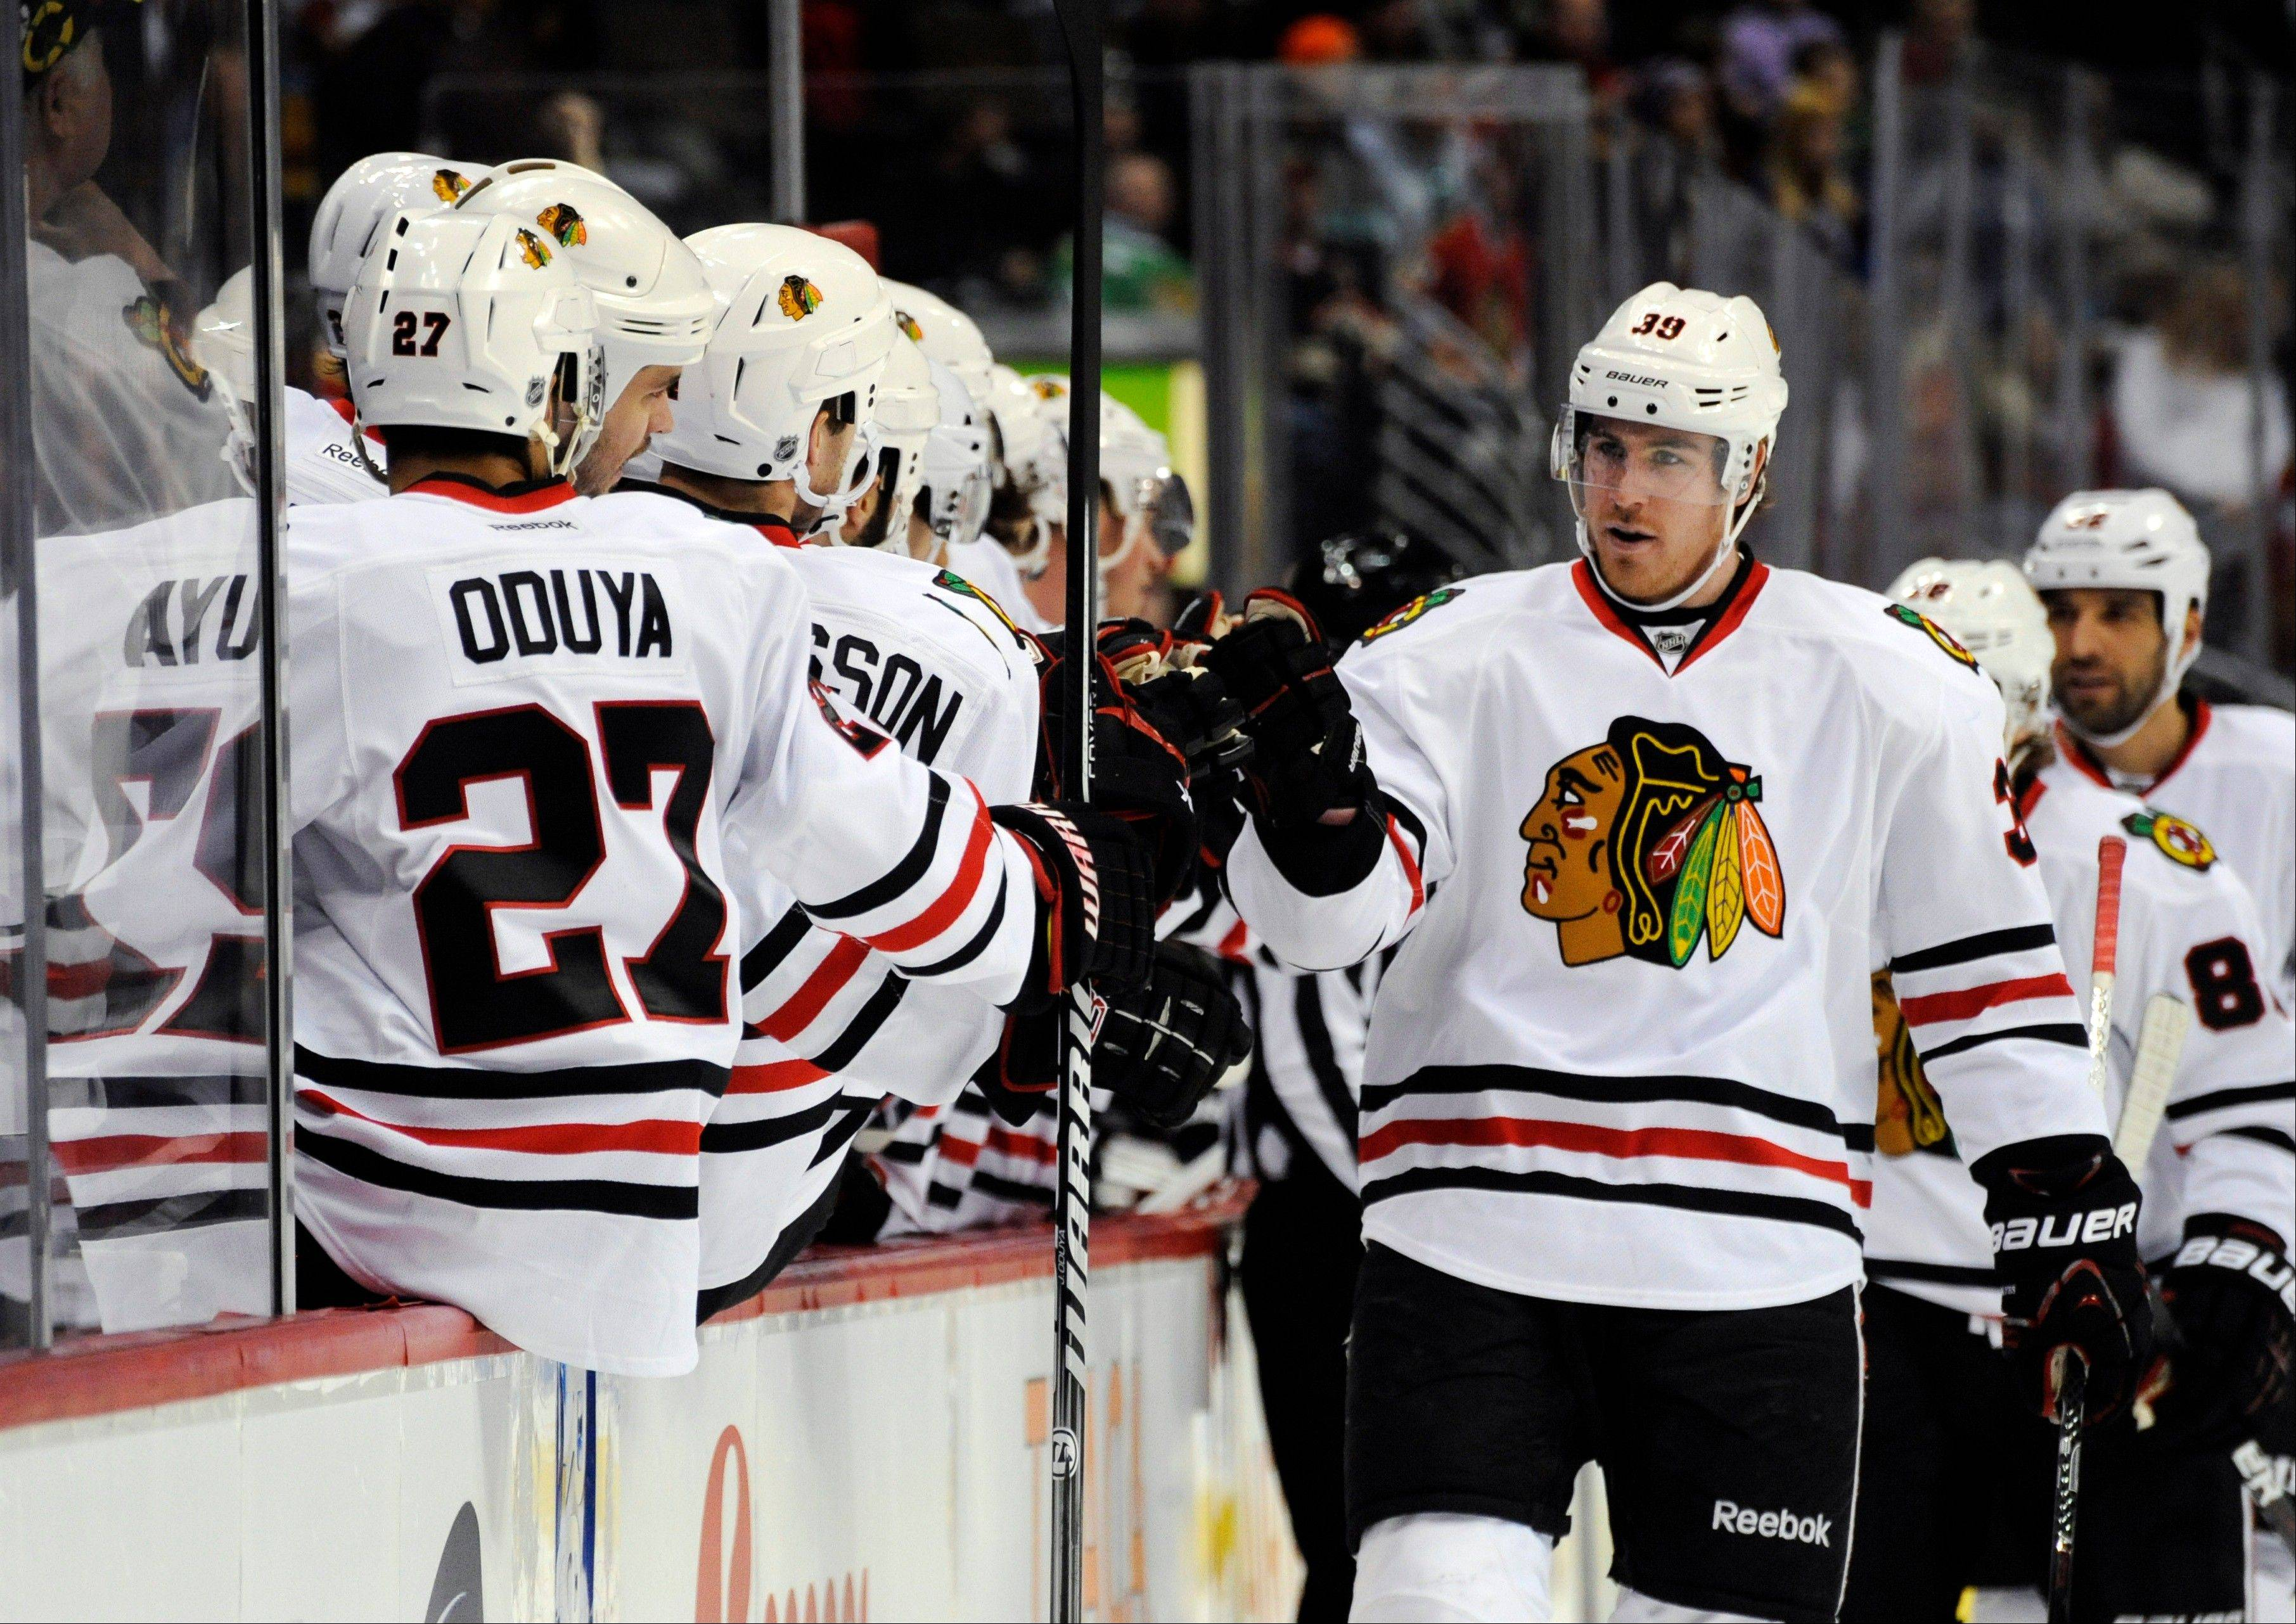 Chicago Blackhawks right wing Jimmy Hayes celebrates a goal against the Colorado Avalanche on Monday. The Hawks have been getting strong contributions from all four lines.